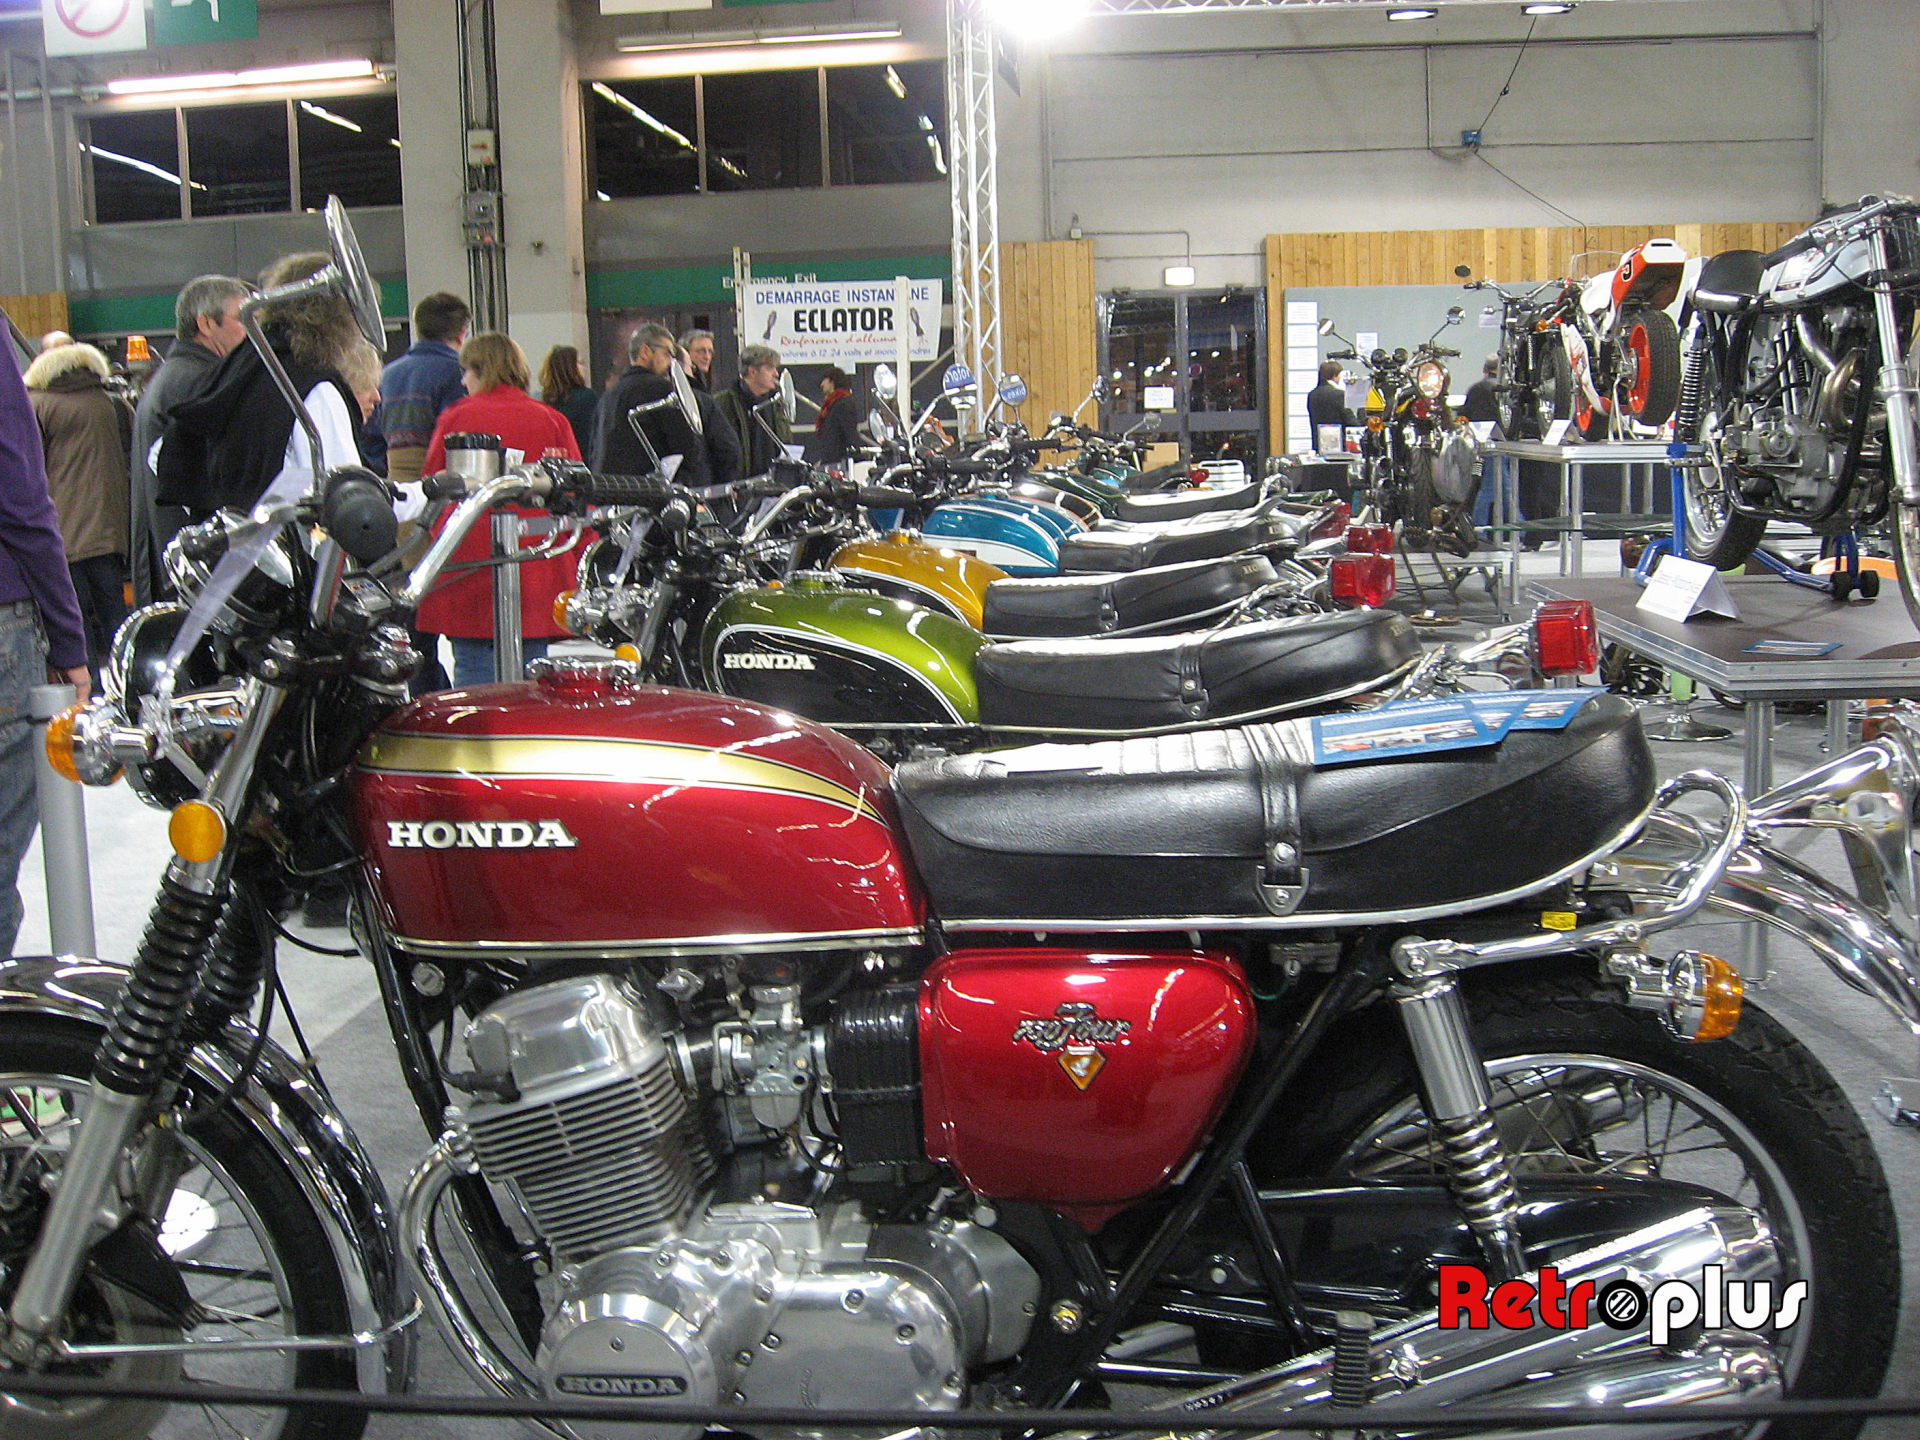 Retromobile2010-Motos-020